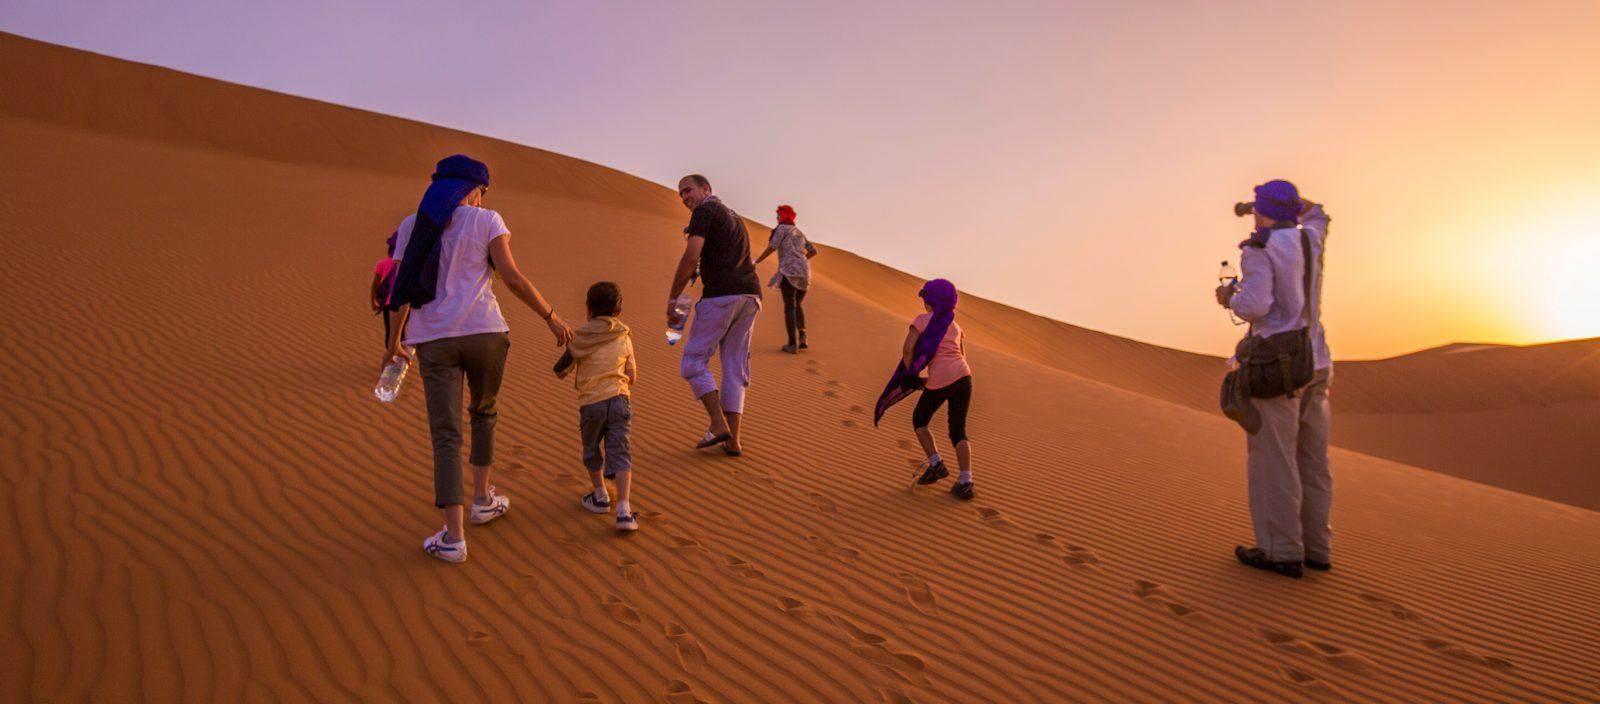 Marokko Family Journey: Von antiken Souks in die Sahara